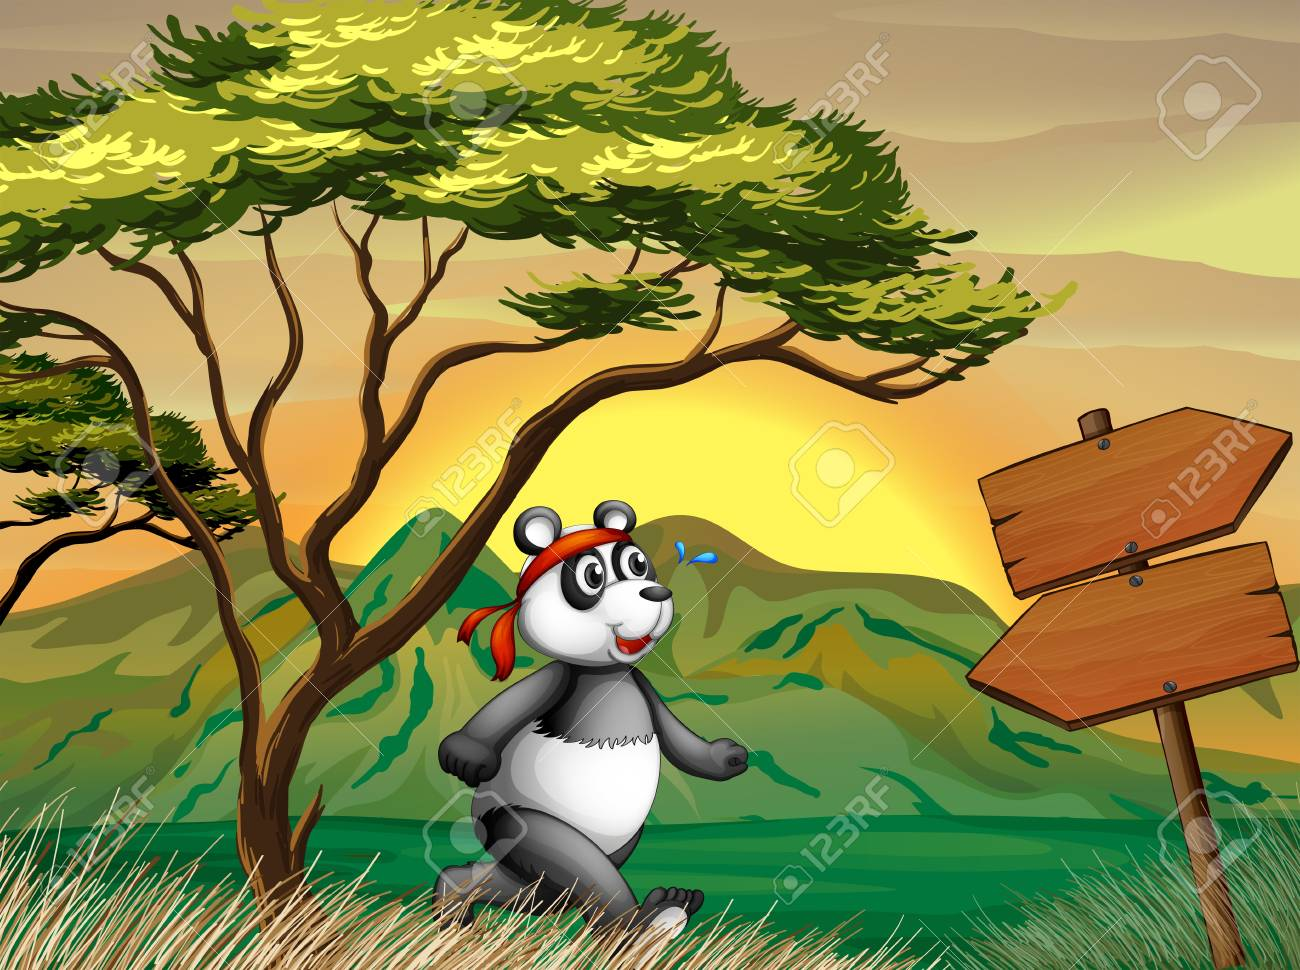 Illustration of a panda following the wooden arrowboard Stock Vector - 20729639